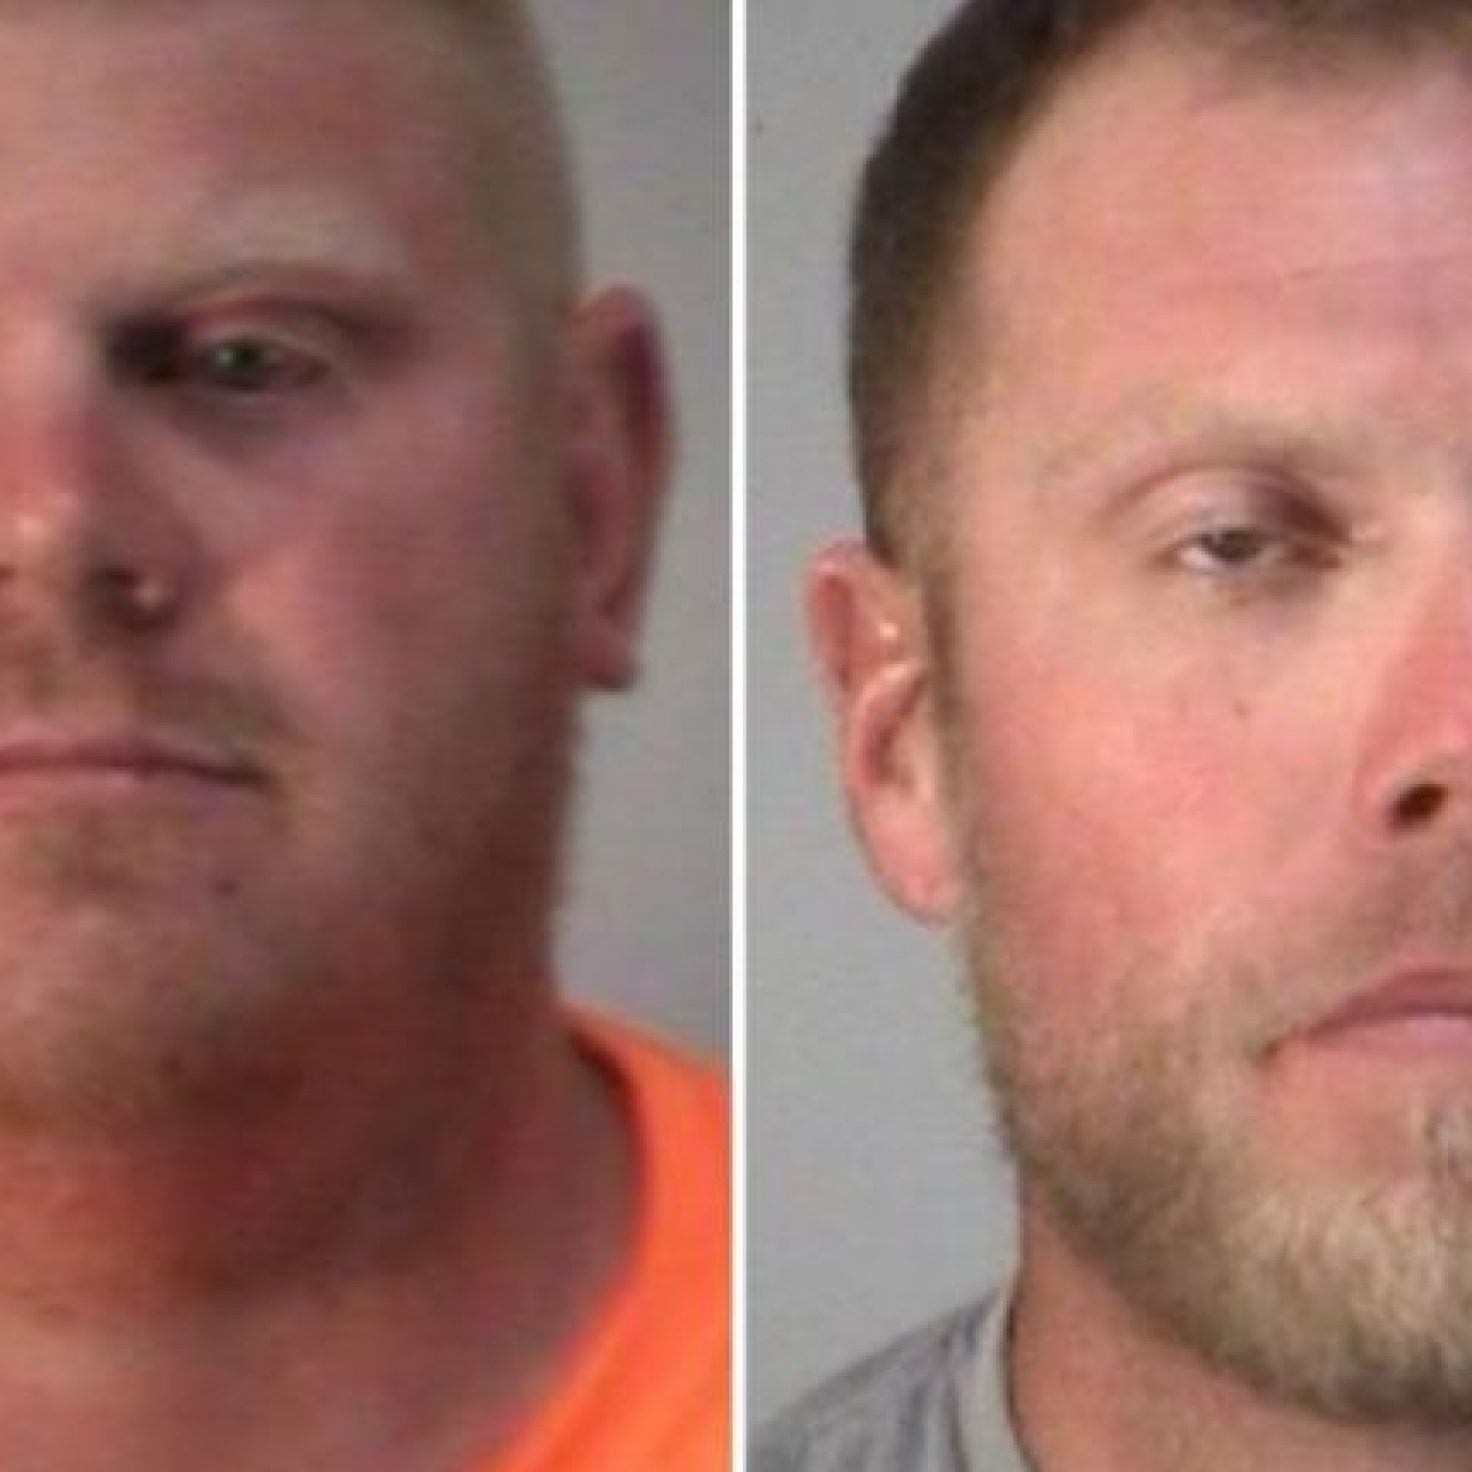 2 Florida White Men Accused Of Shooting At Biracial Children While Yelling Racial Slurs